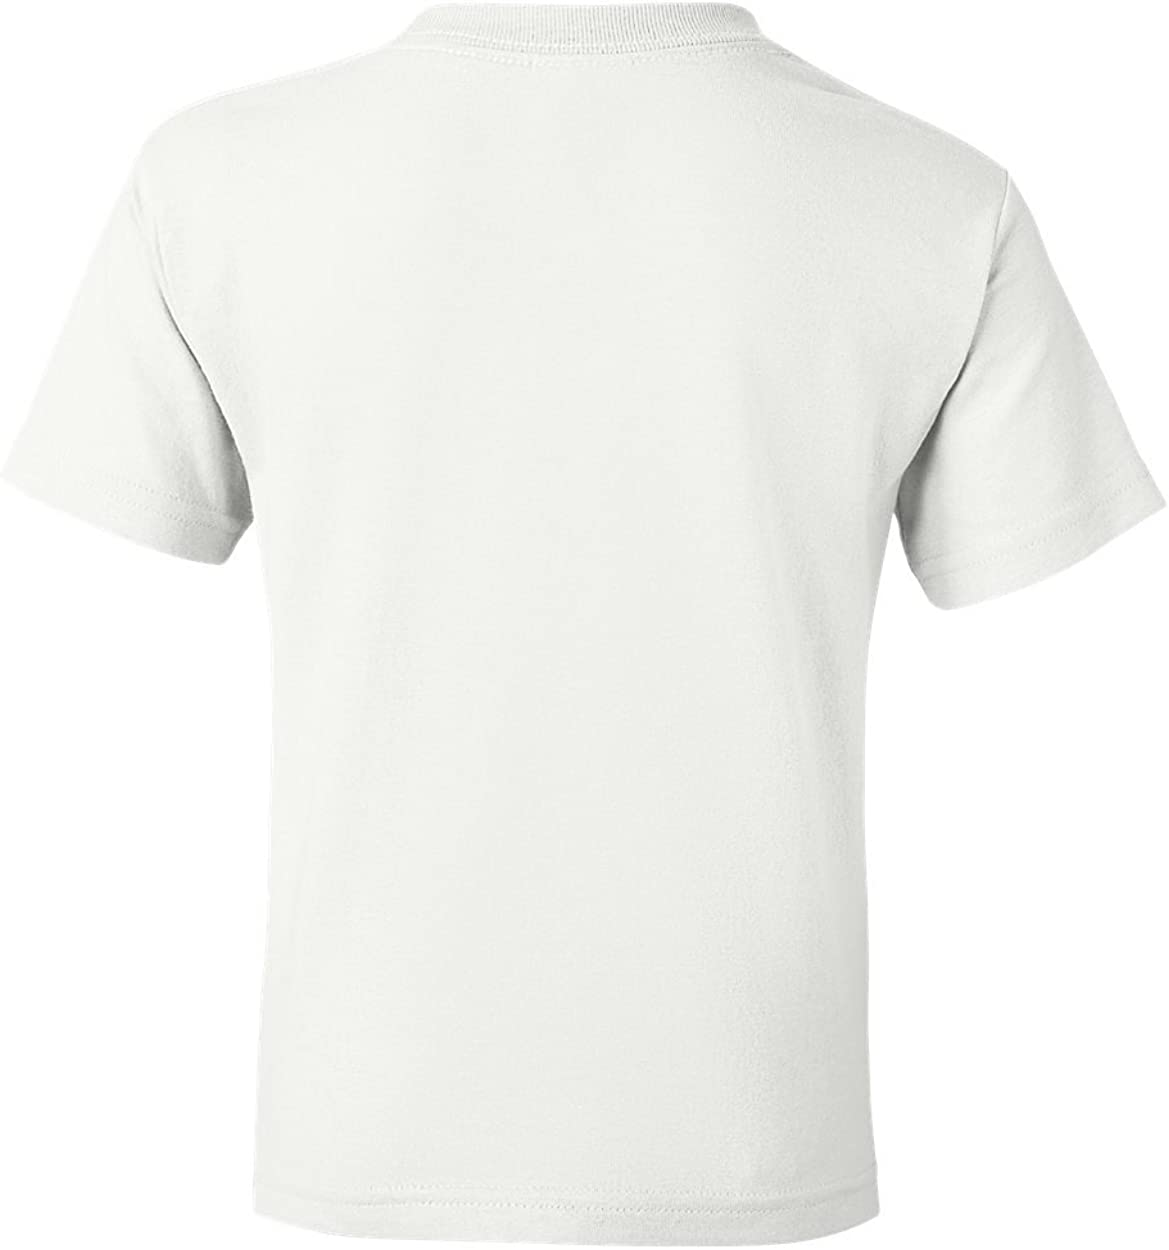 G800B L White Pack of 12 Gildan 5.5 oz 50//50 T-Shirt